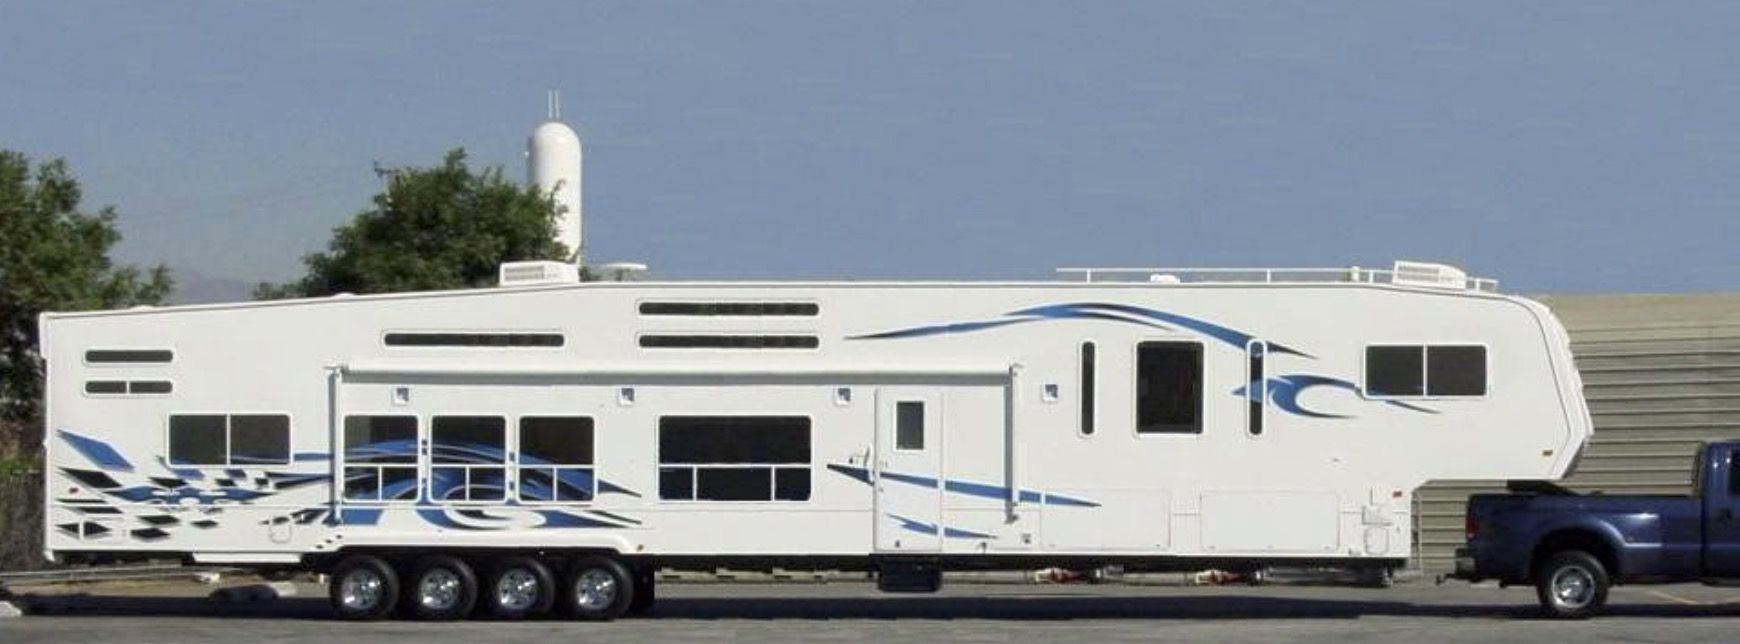 It S Just Not Long Enough Weekend Warrior Fifth Wheel Campers Fifth Wheel Trailers Toy Hauler Camper